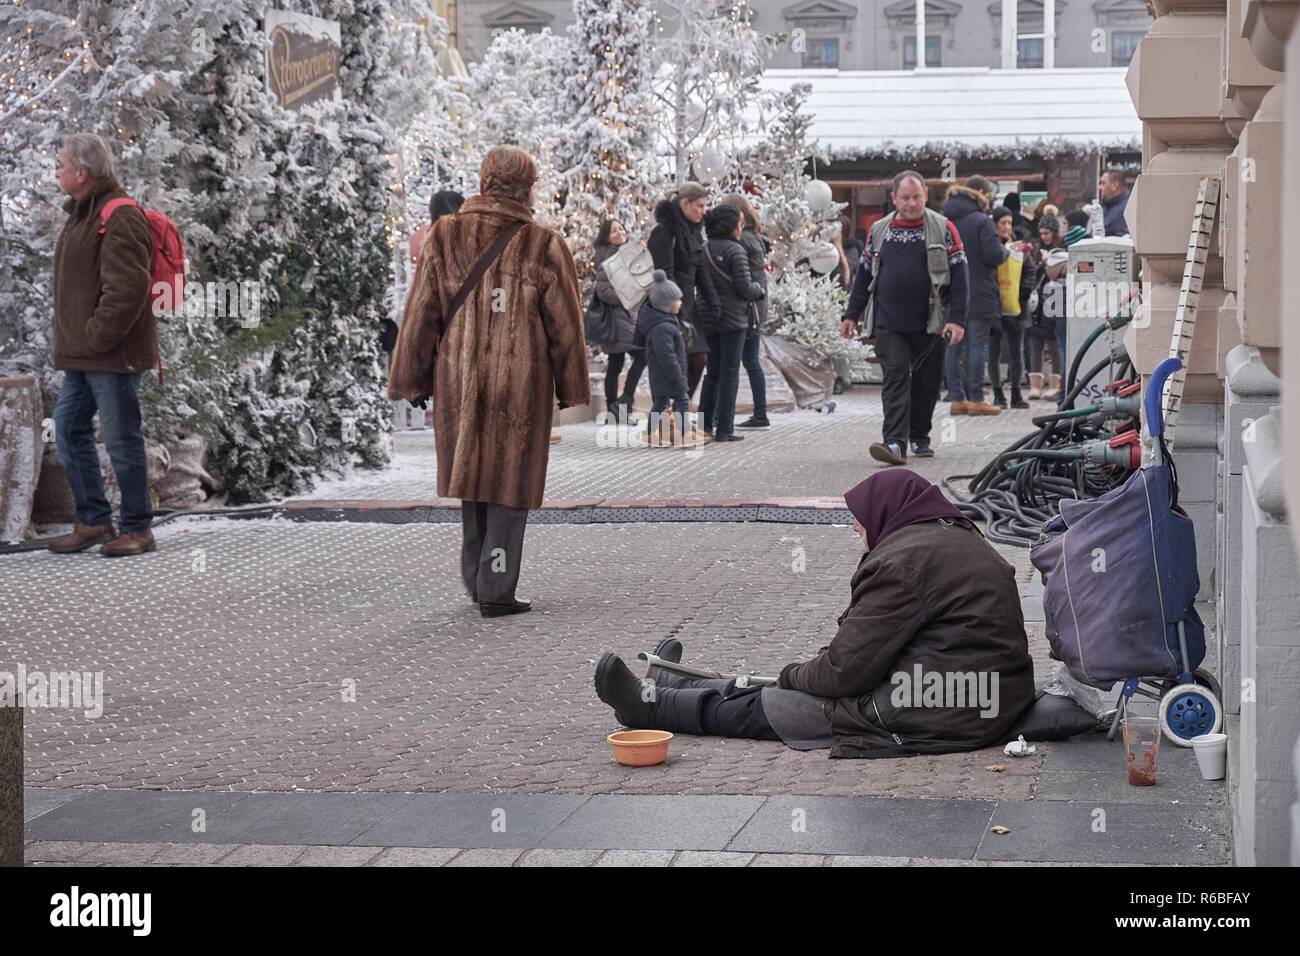 older-lady-sitting-on-ground-begging-passerby-in-zagreb-city-square-decorated-during-celebrations-of-advent-market-happen-walkers-mostly-ignoring-R6BFAY.jpg